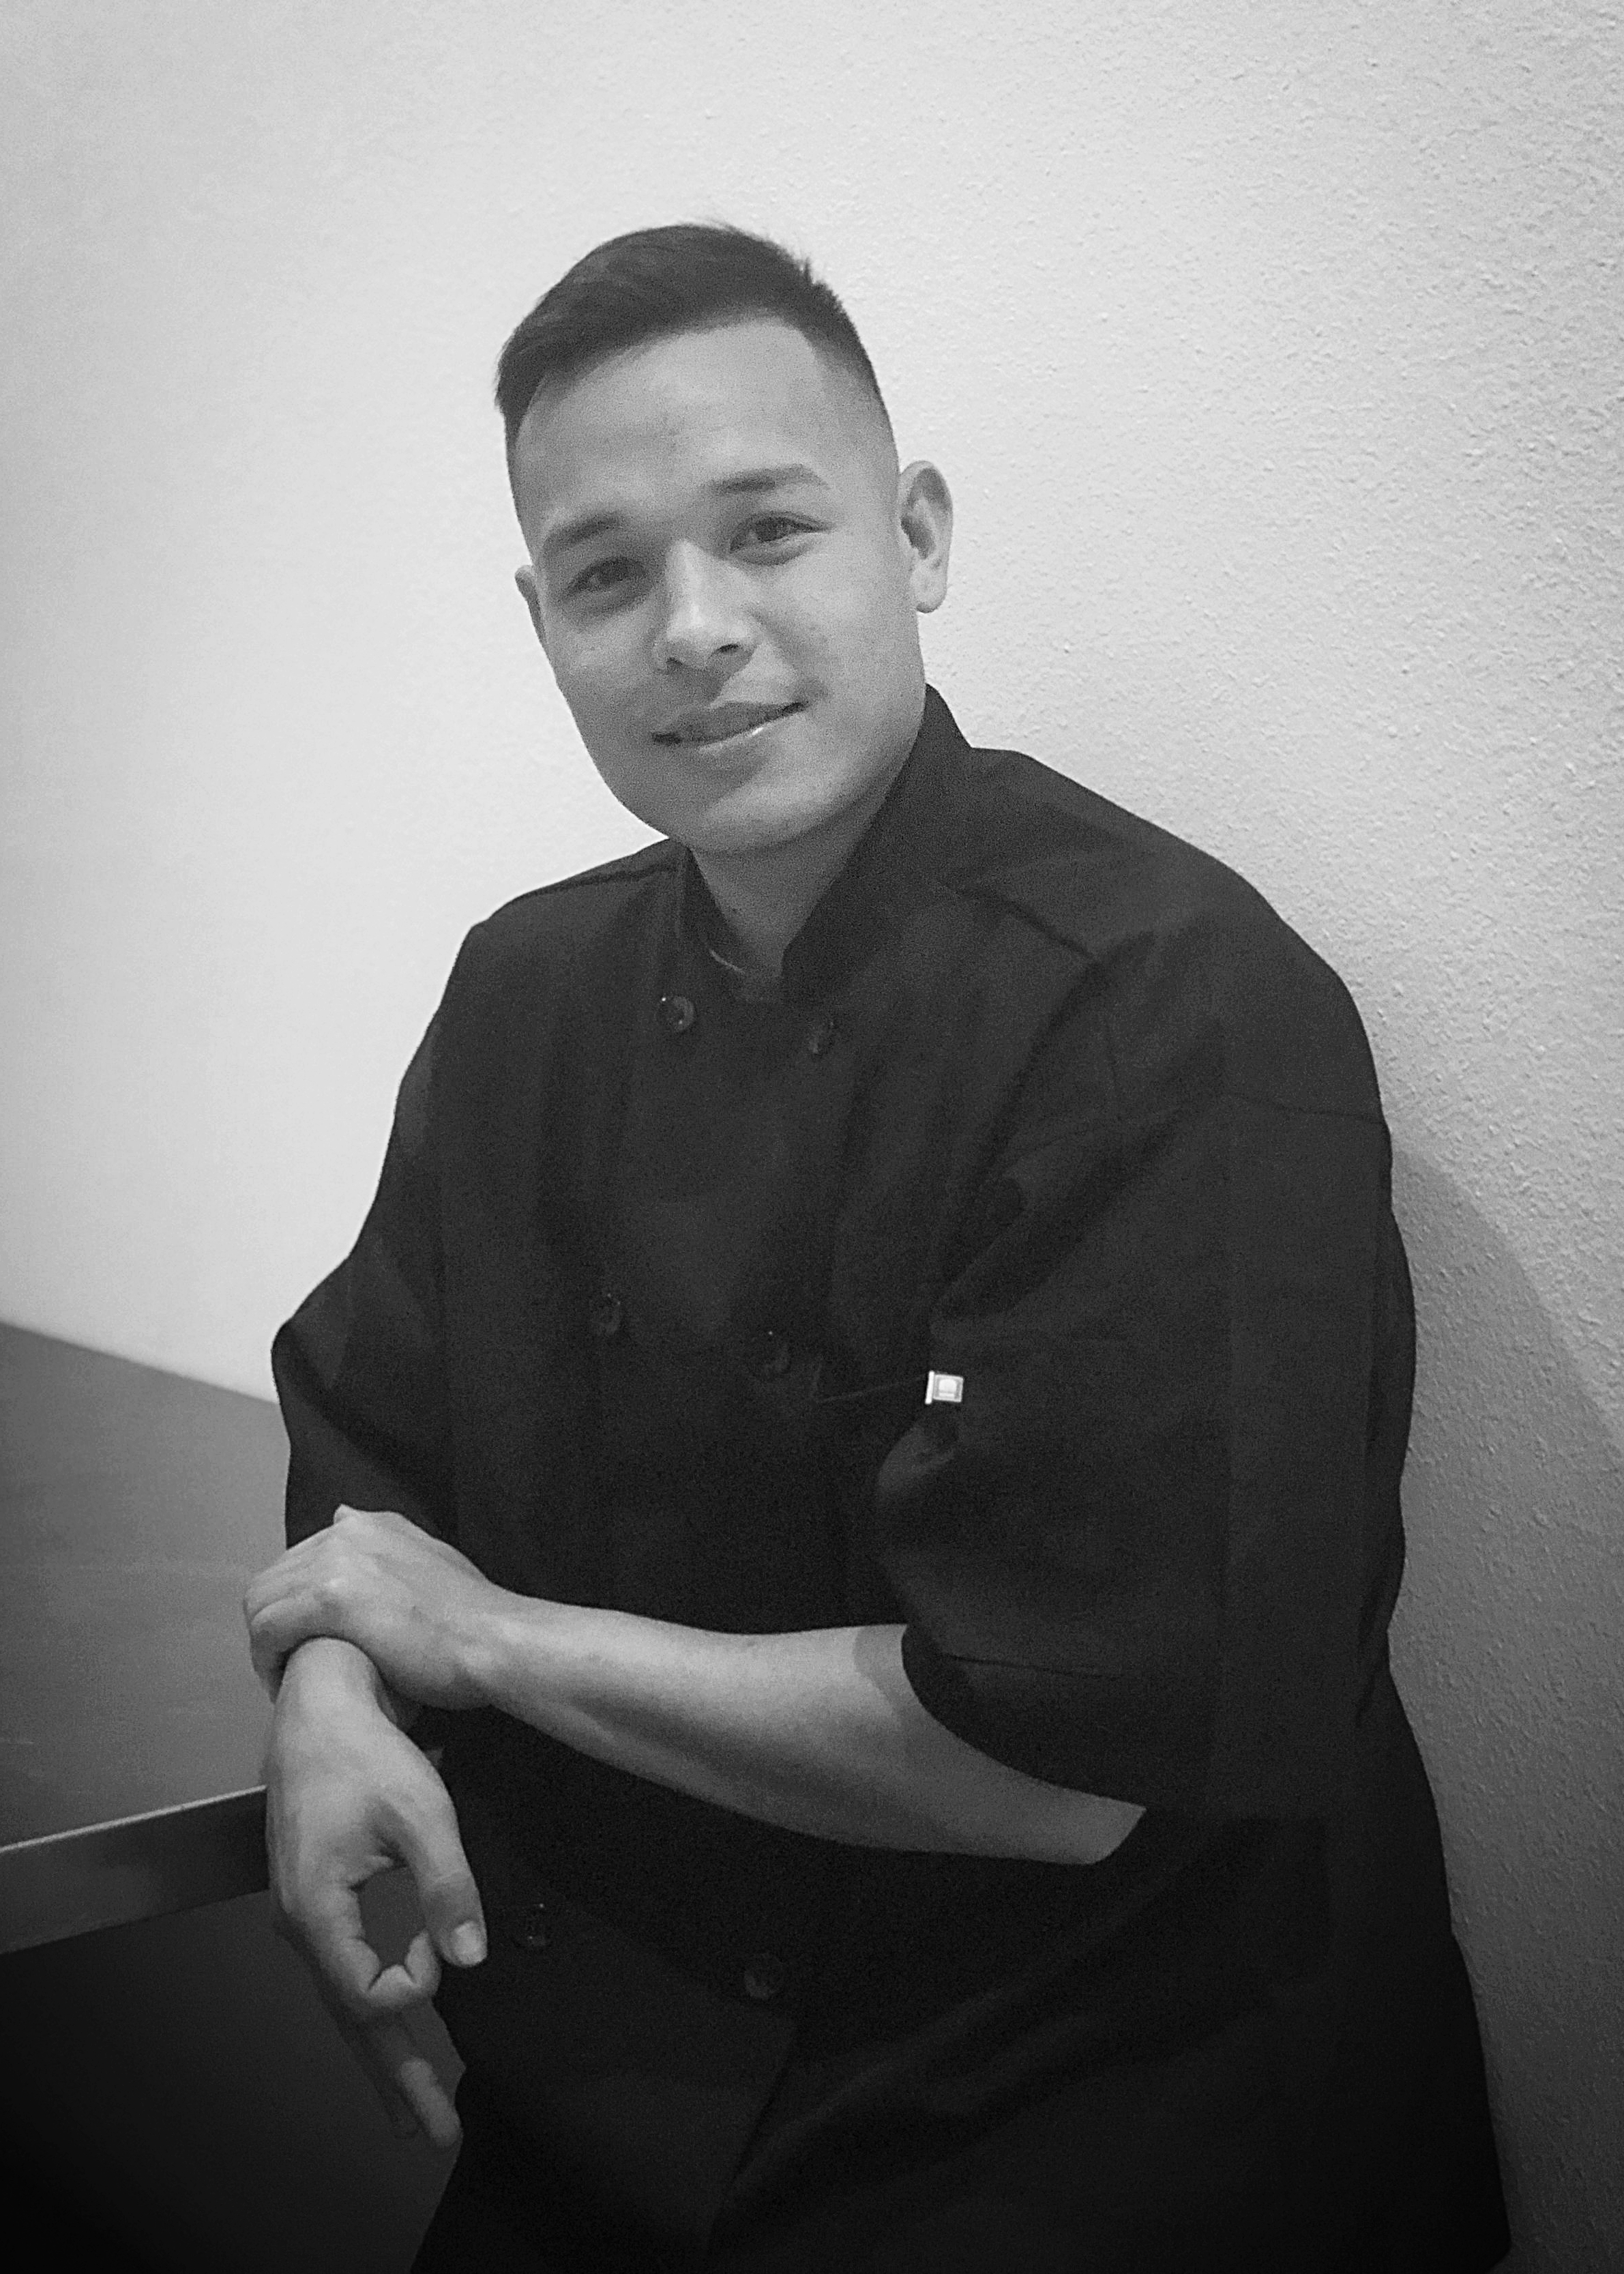 Wuthipat 'Woody' Brink is a founder and managing partner of Thai Mama Inc. He grew up eating Thai Mama's cooking all his life and thought it would be time to share it with the world. Woody combines his engineering background with a millennial mindset and is currently in charge of IT and marketing.